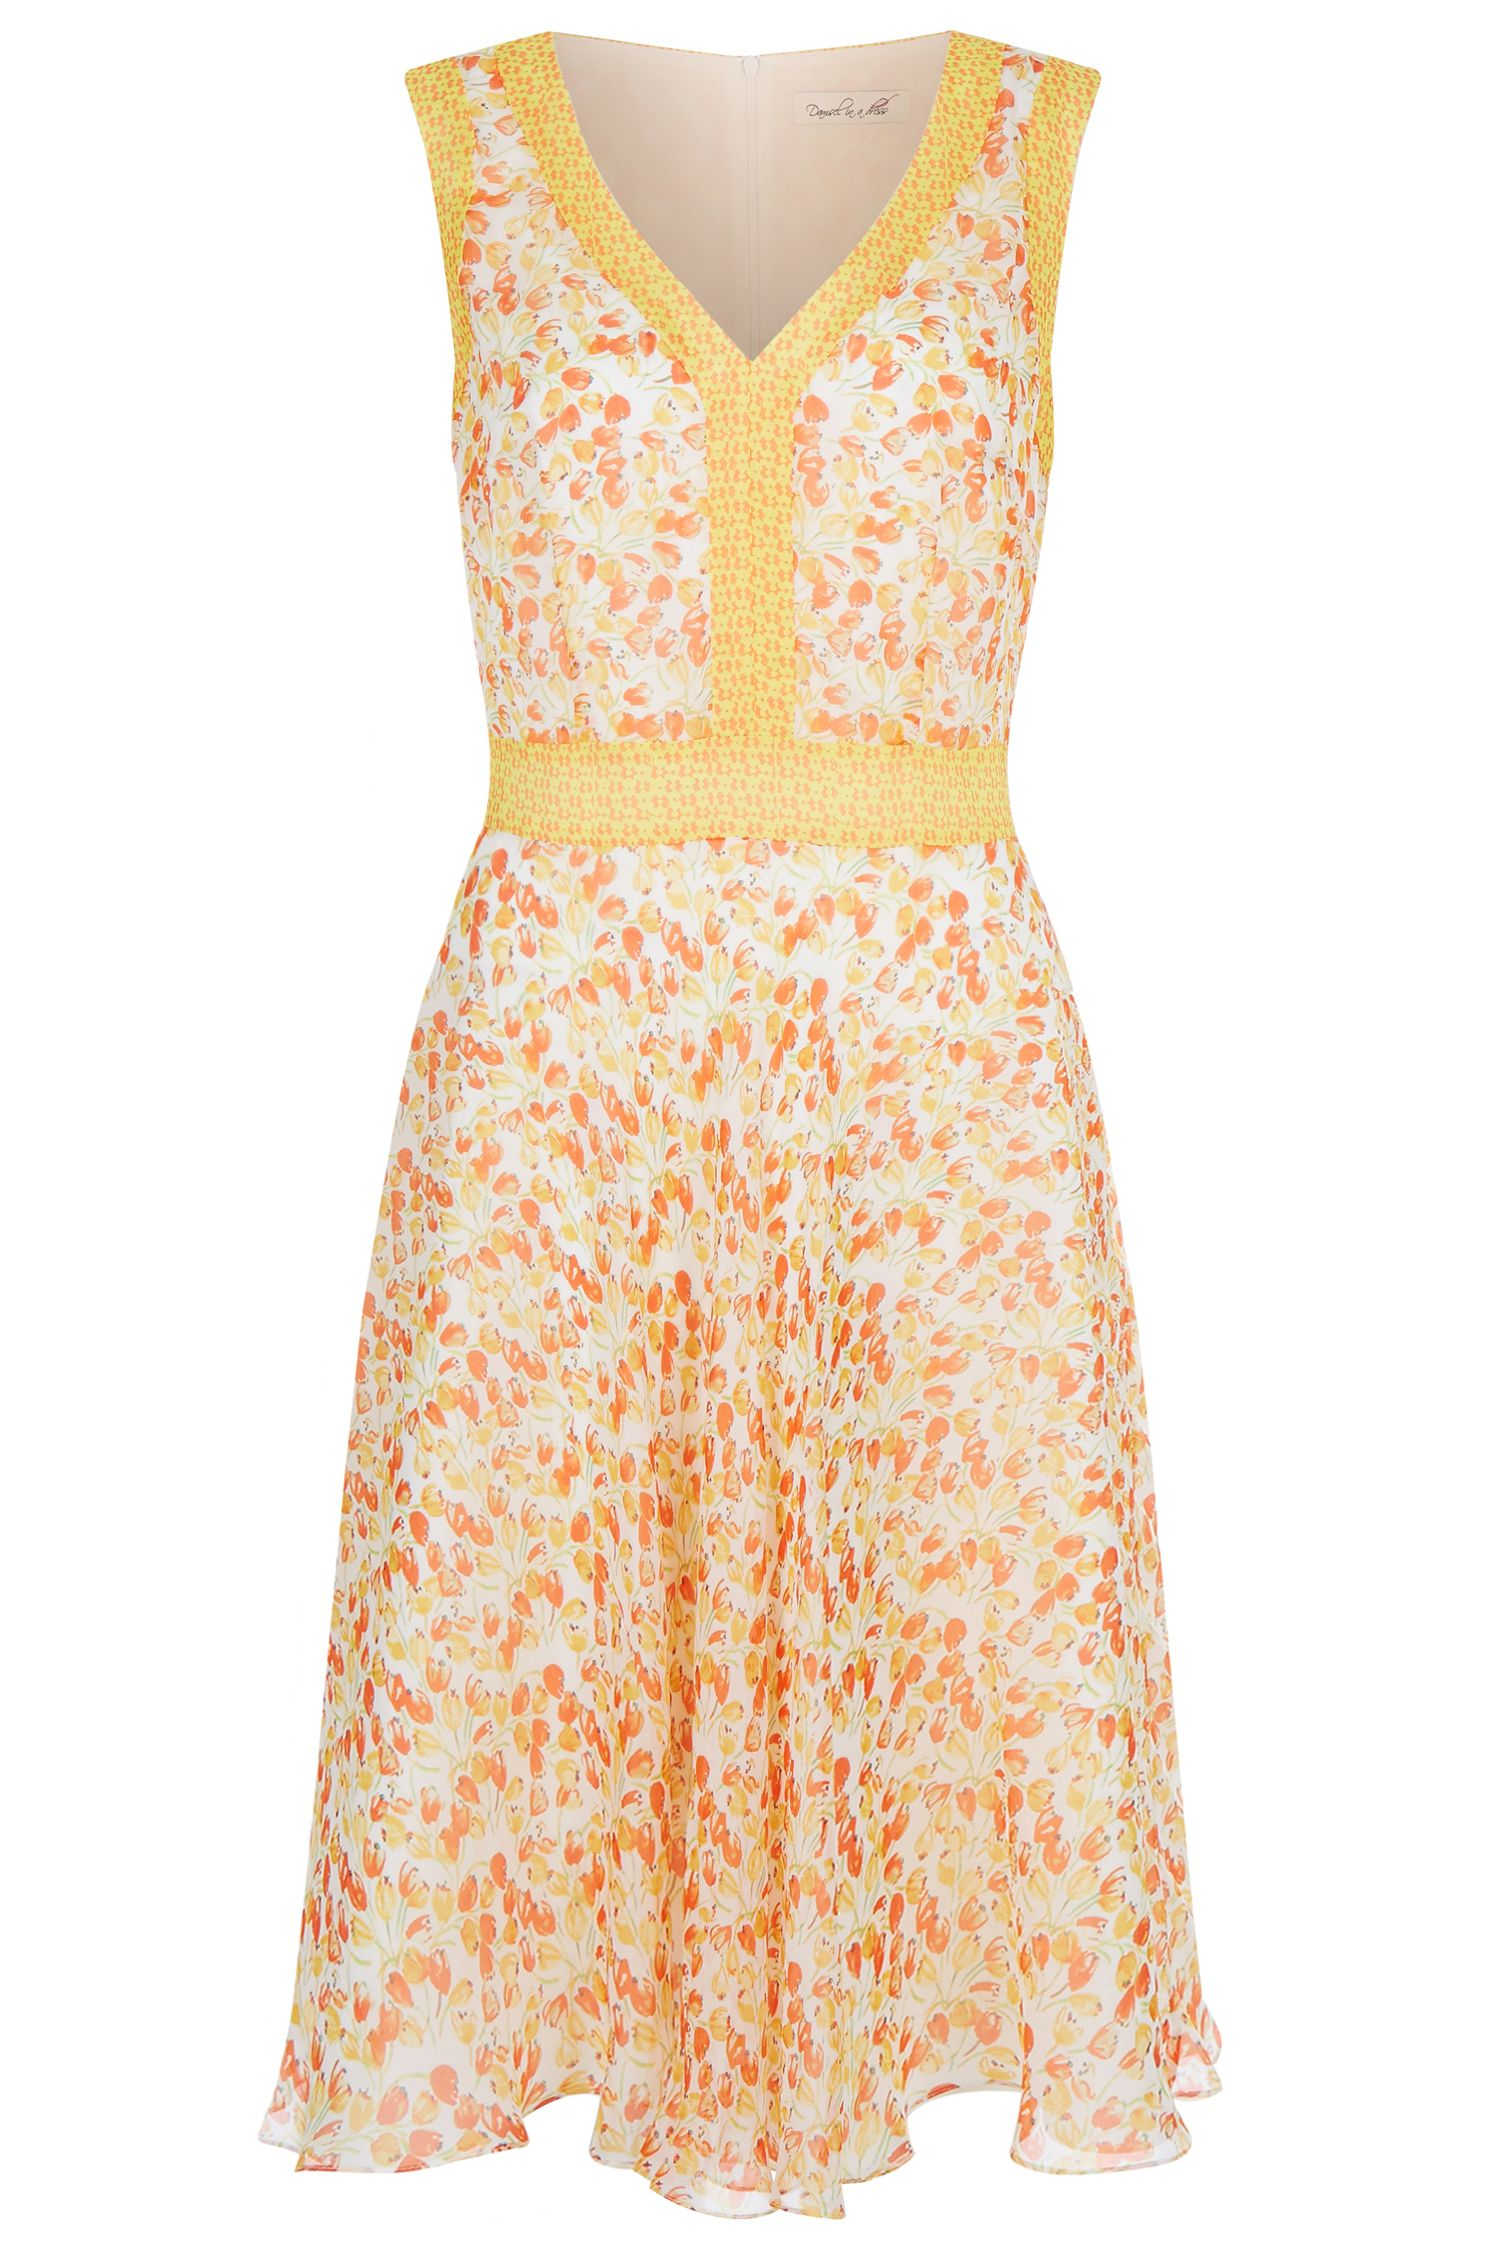 Damsel in a Dress Amsterdam Tia Dress, Orange